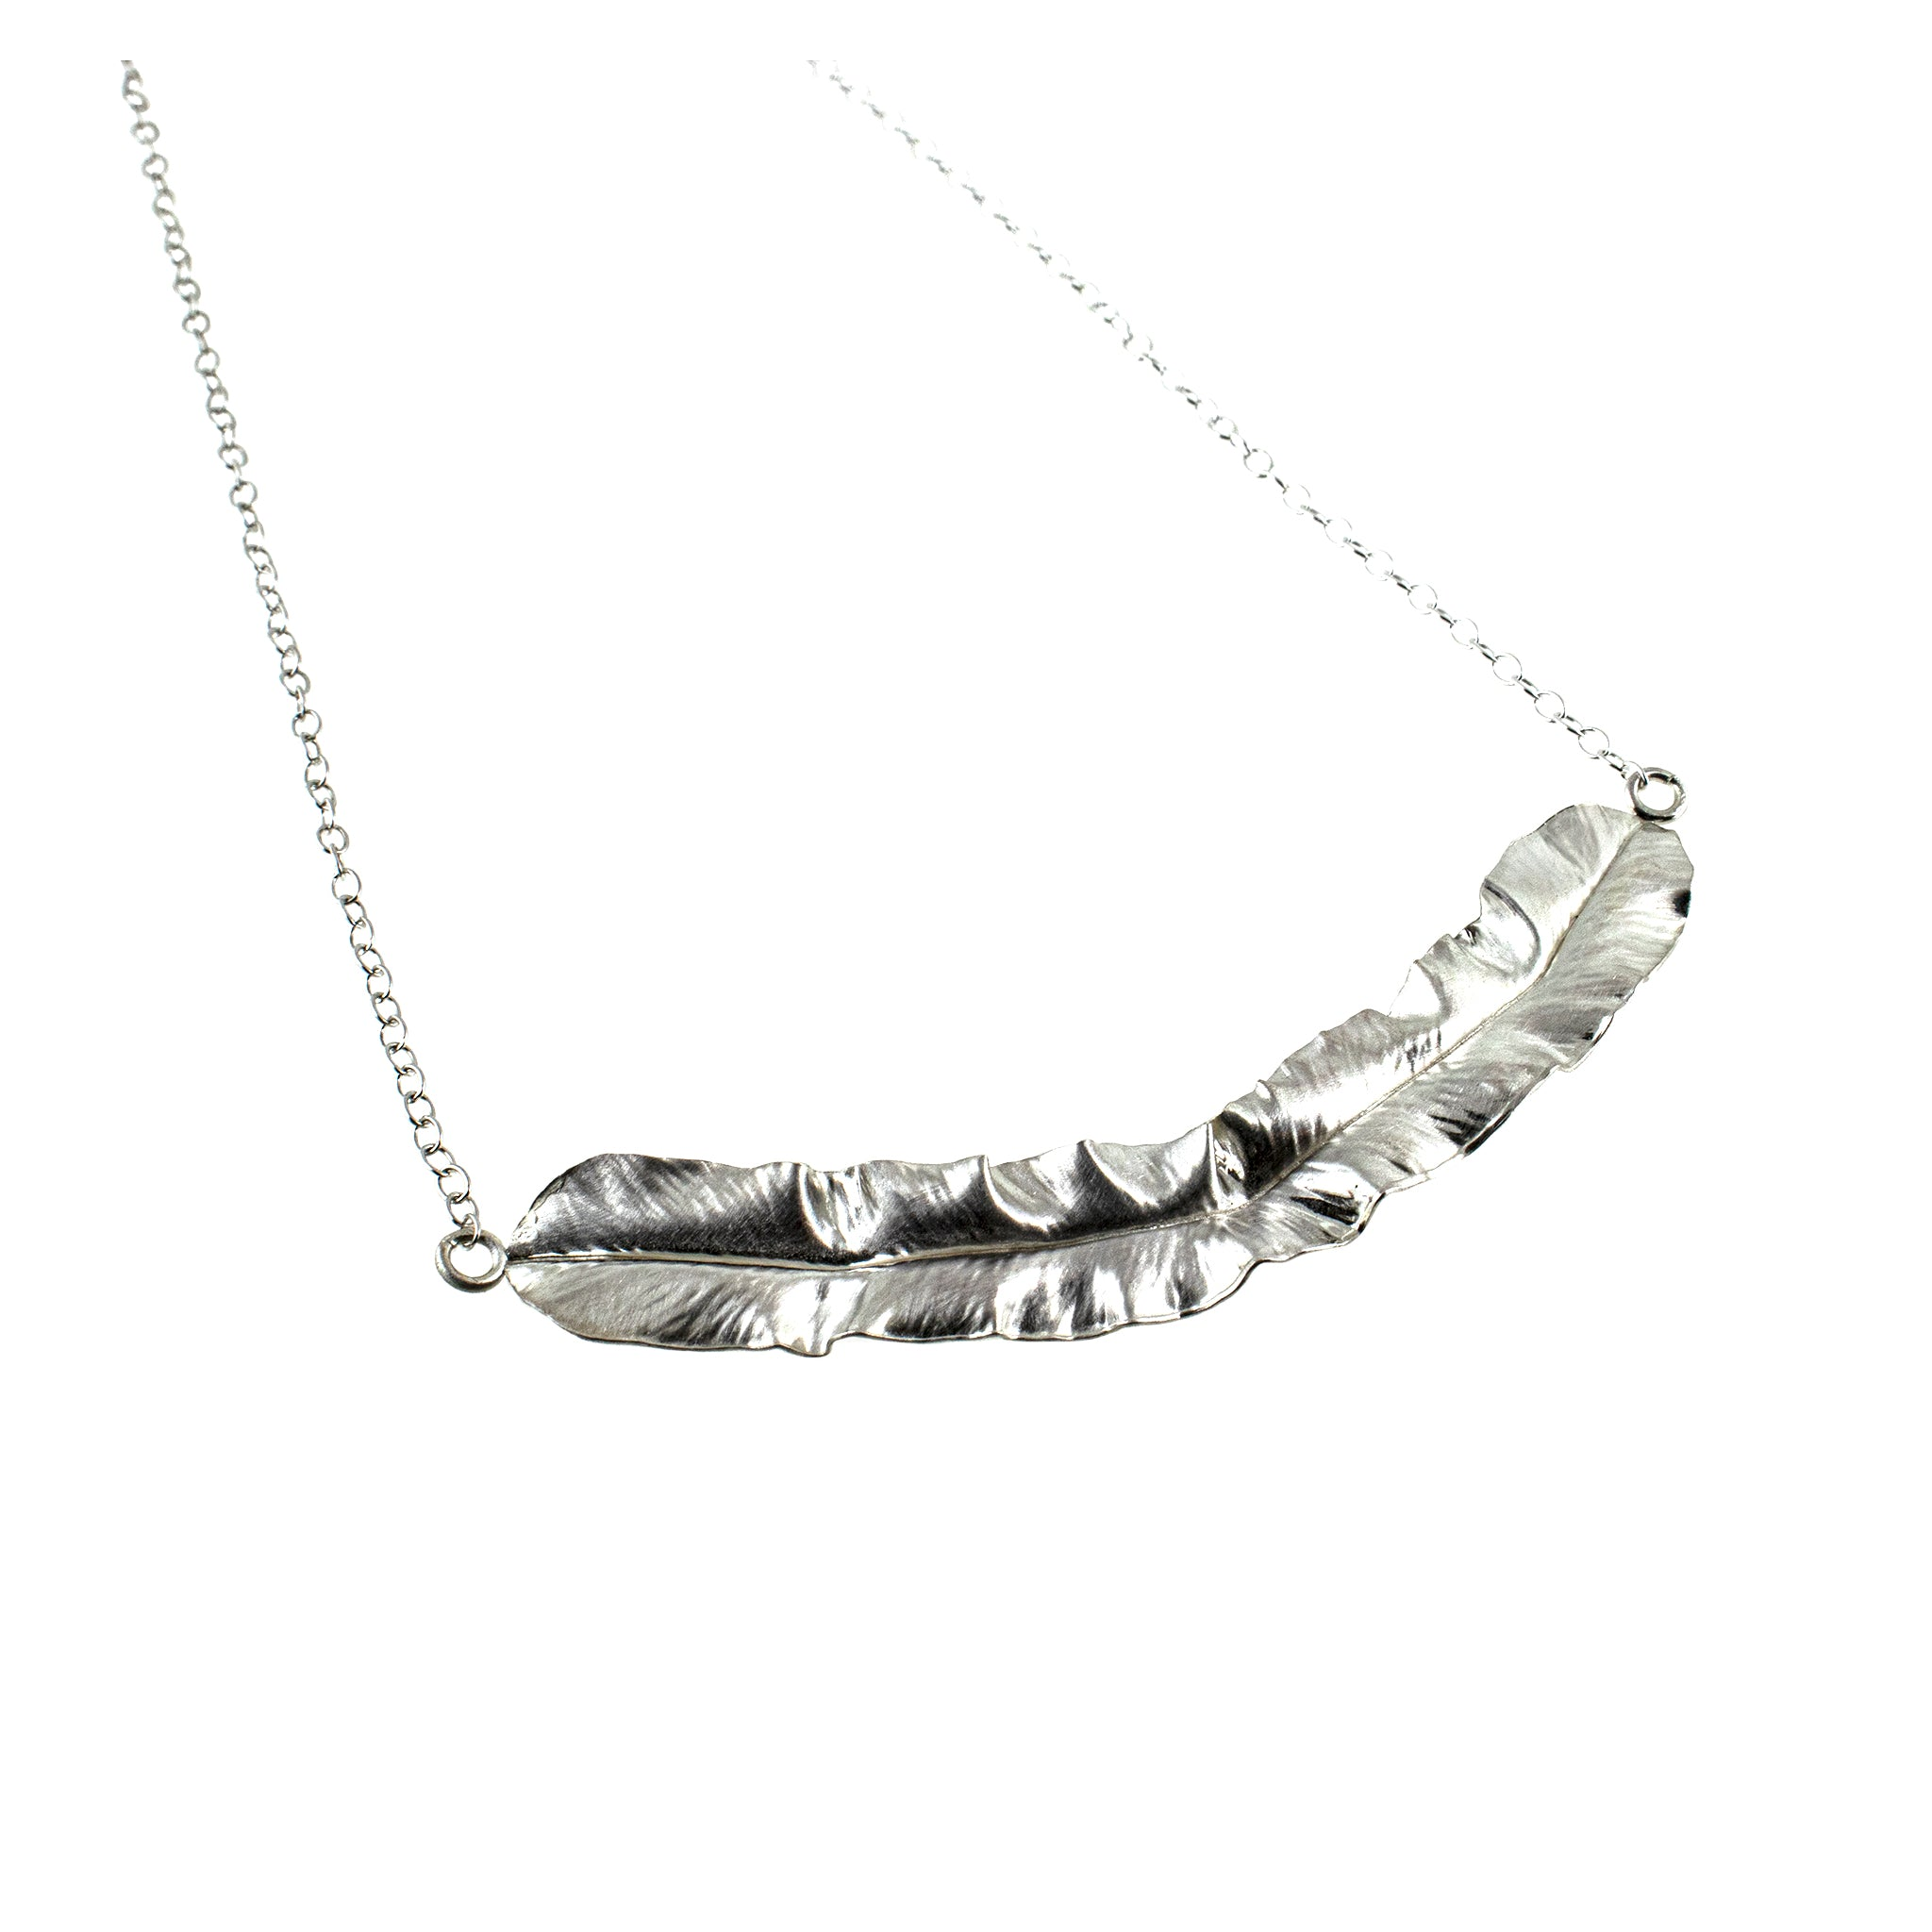 Sterling silver leaf necklace by eko jewelry design, Pamona